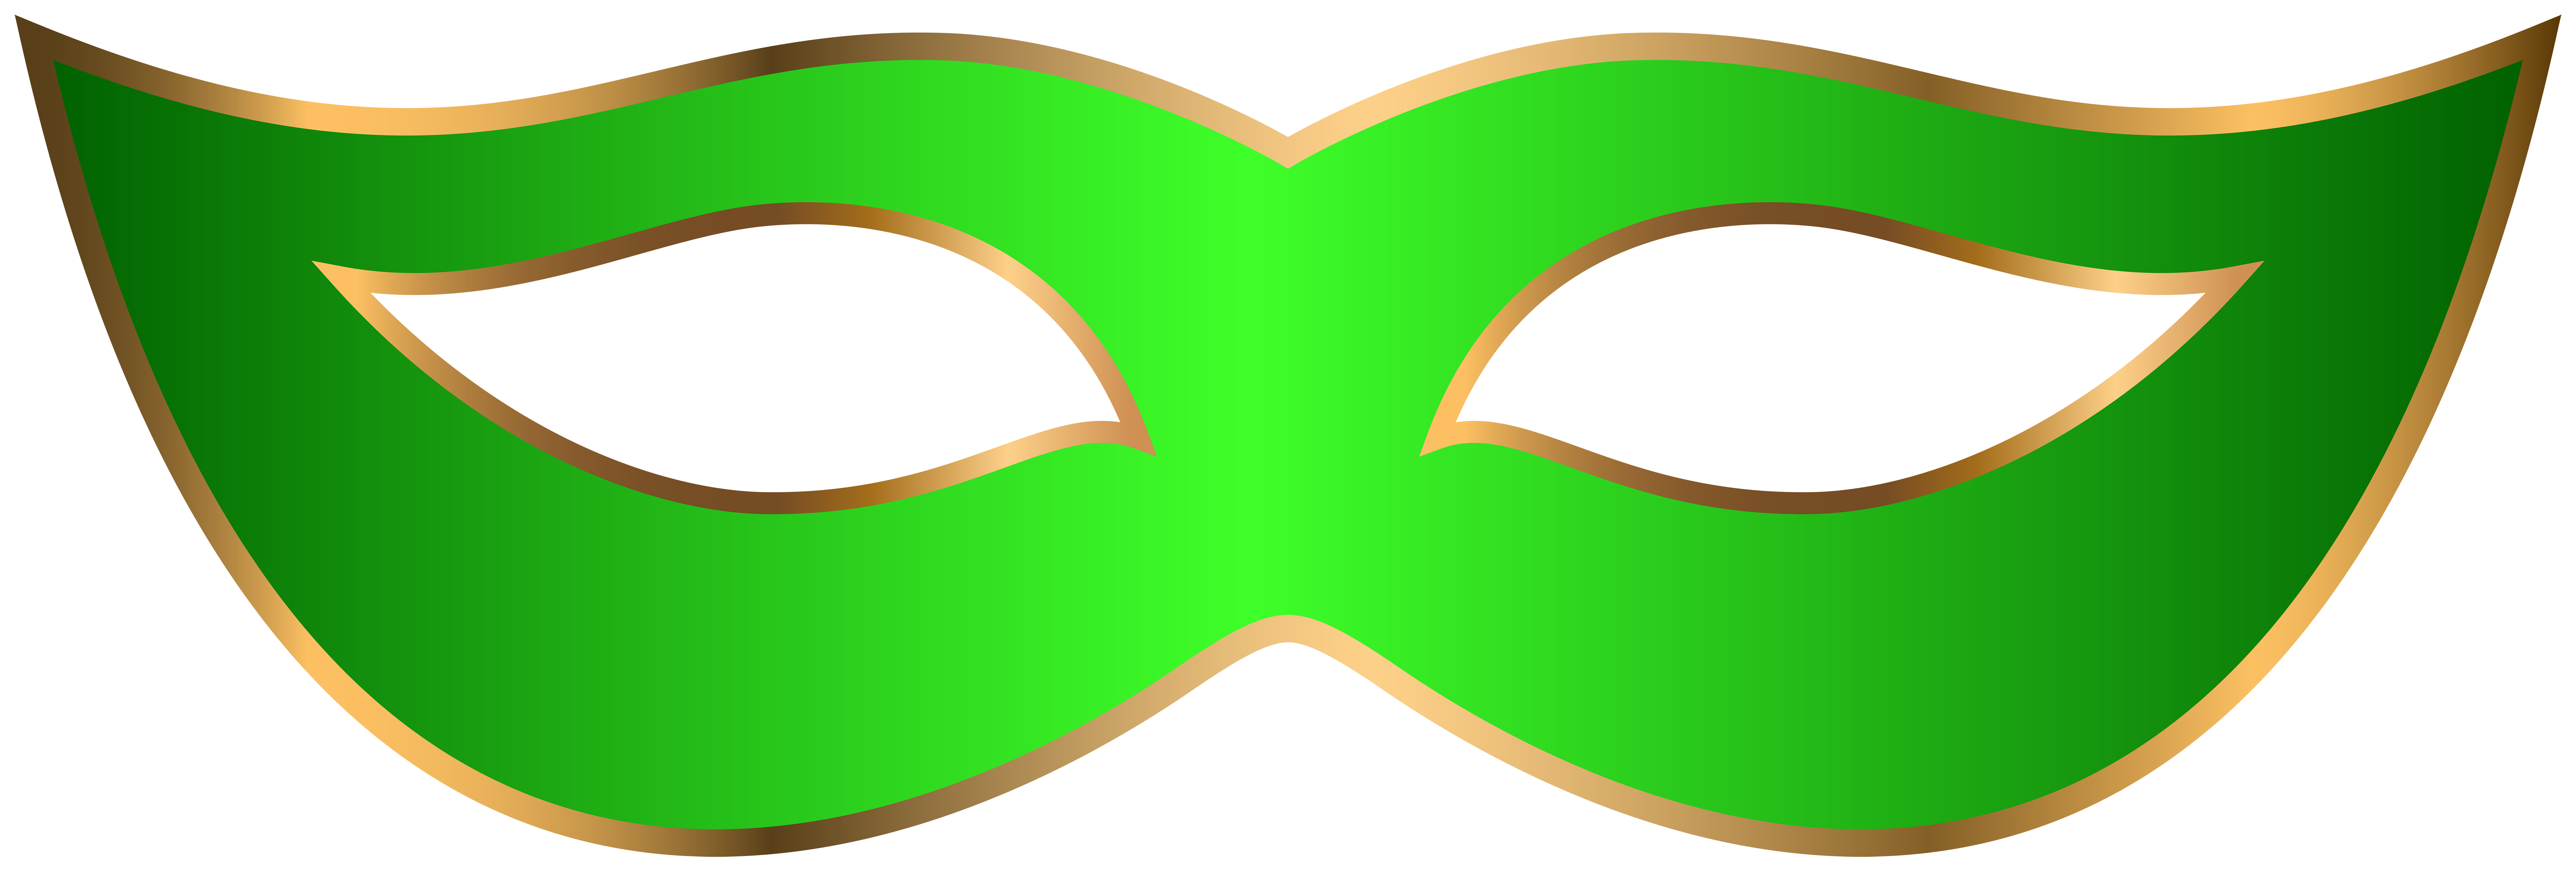 8000x2715 Green Carnival Mask Clip Art Transparent Image